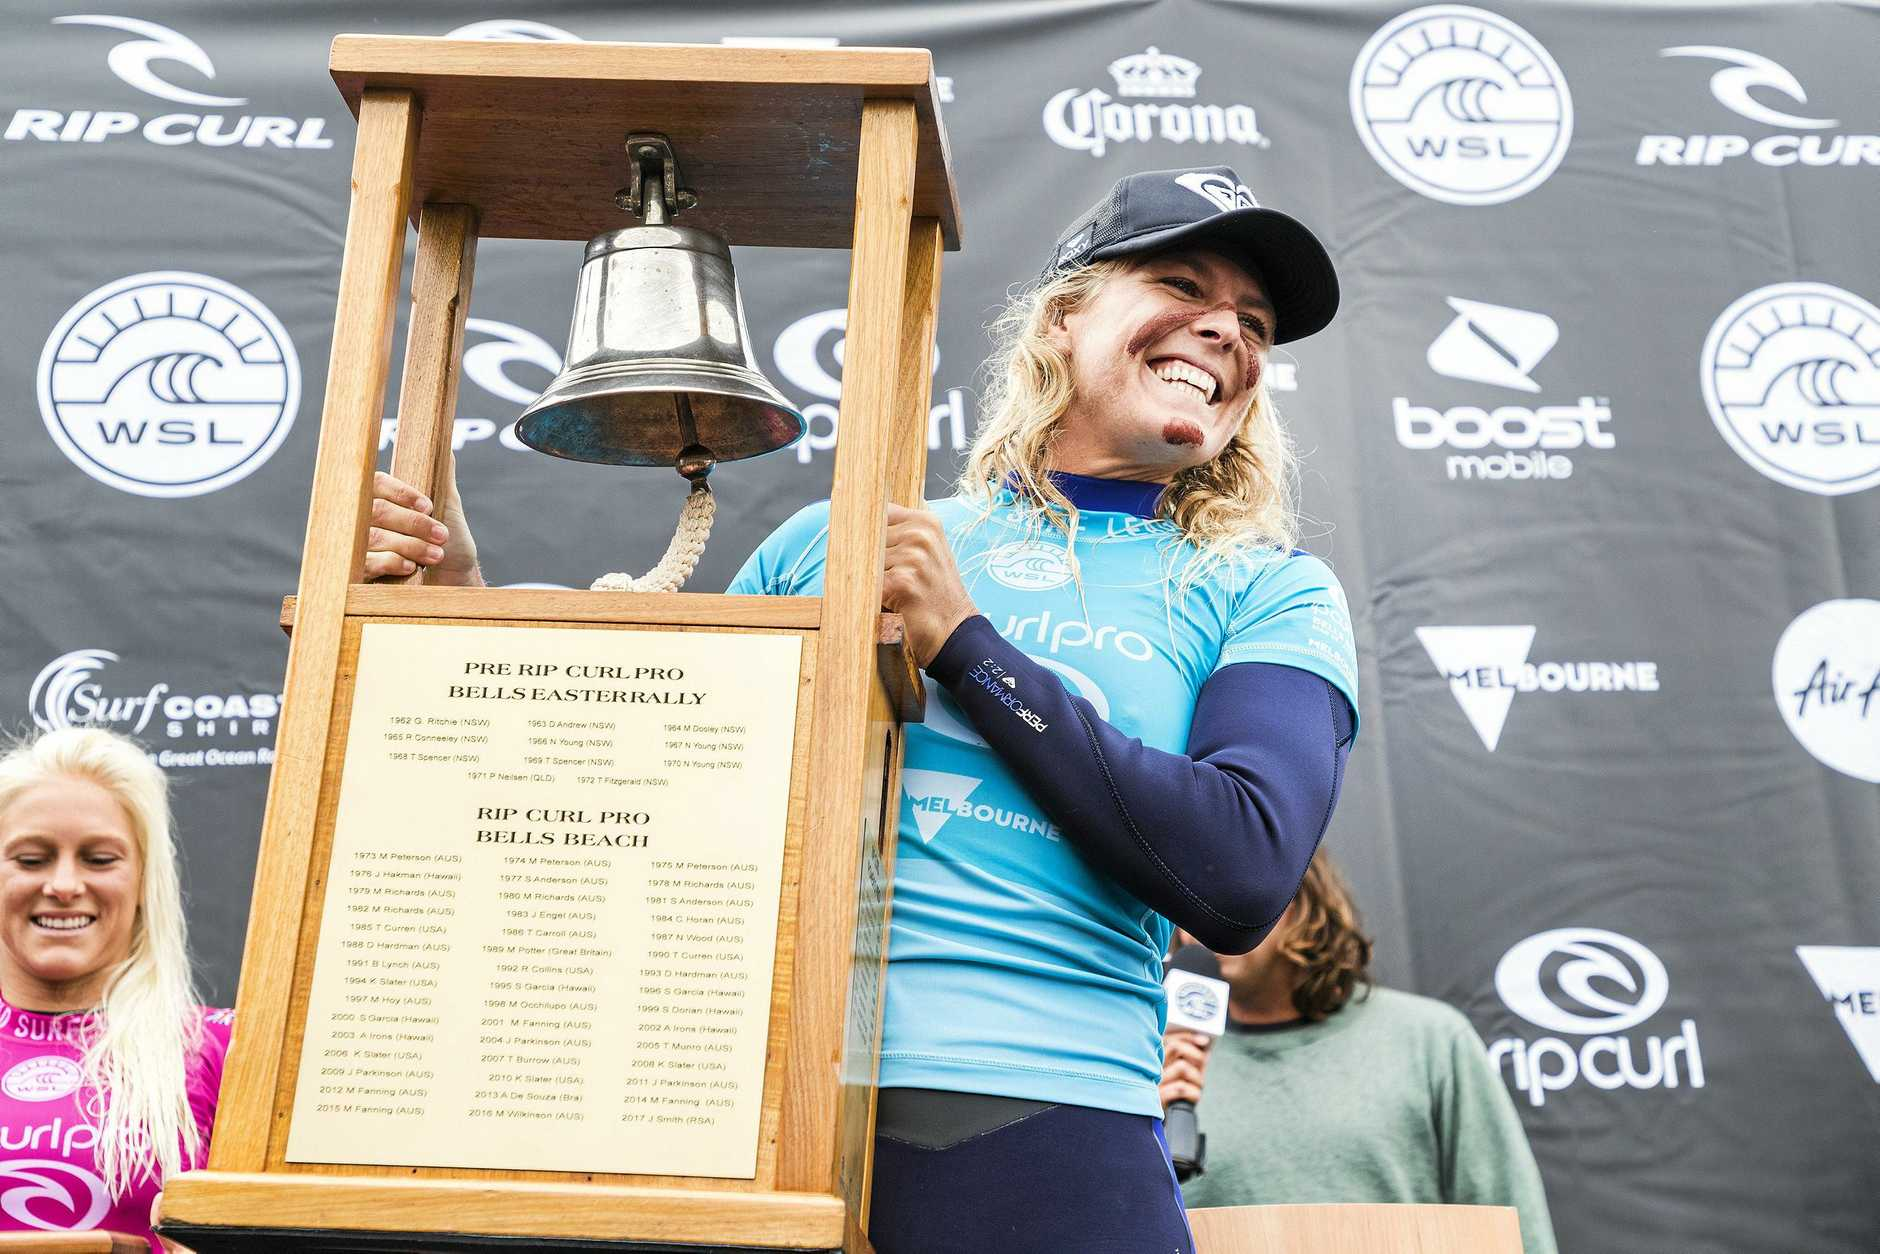 A supplied image obtained Thursday, April 5, 2018 of Stephanie Gilmore of Australia who won the final of the Rip Curl Pro at Bells Beach in Victoria, Thursday, April 5, 2018. (AAP Image/Supplied by World Surf League, Kelly Cestari) NO ARCHIVING, EDITORIAL USE ONLY